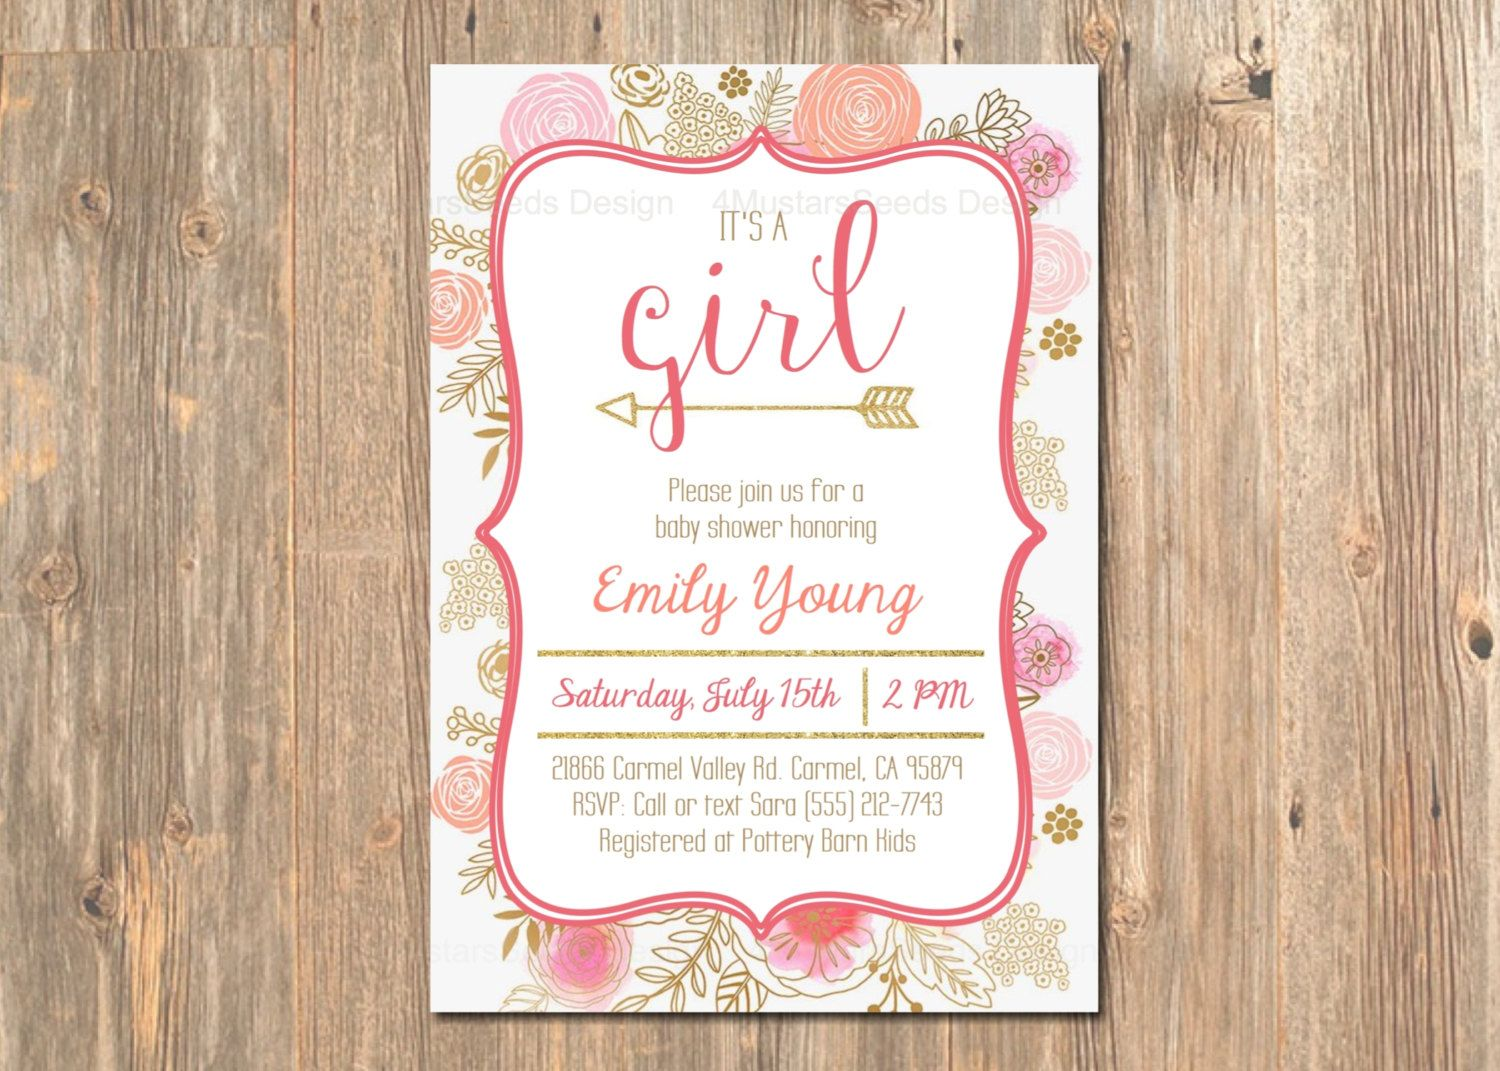 birthday party invitations printable%0A First Birthday Invitation  Girl u    s Party Invite  Rustic  Pink  u     Gold   Printable  Tribal  Arrow  Modern Invitations  Invites  Girl by on Etsy